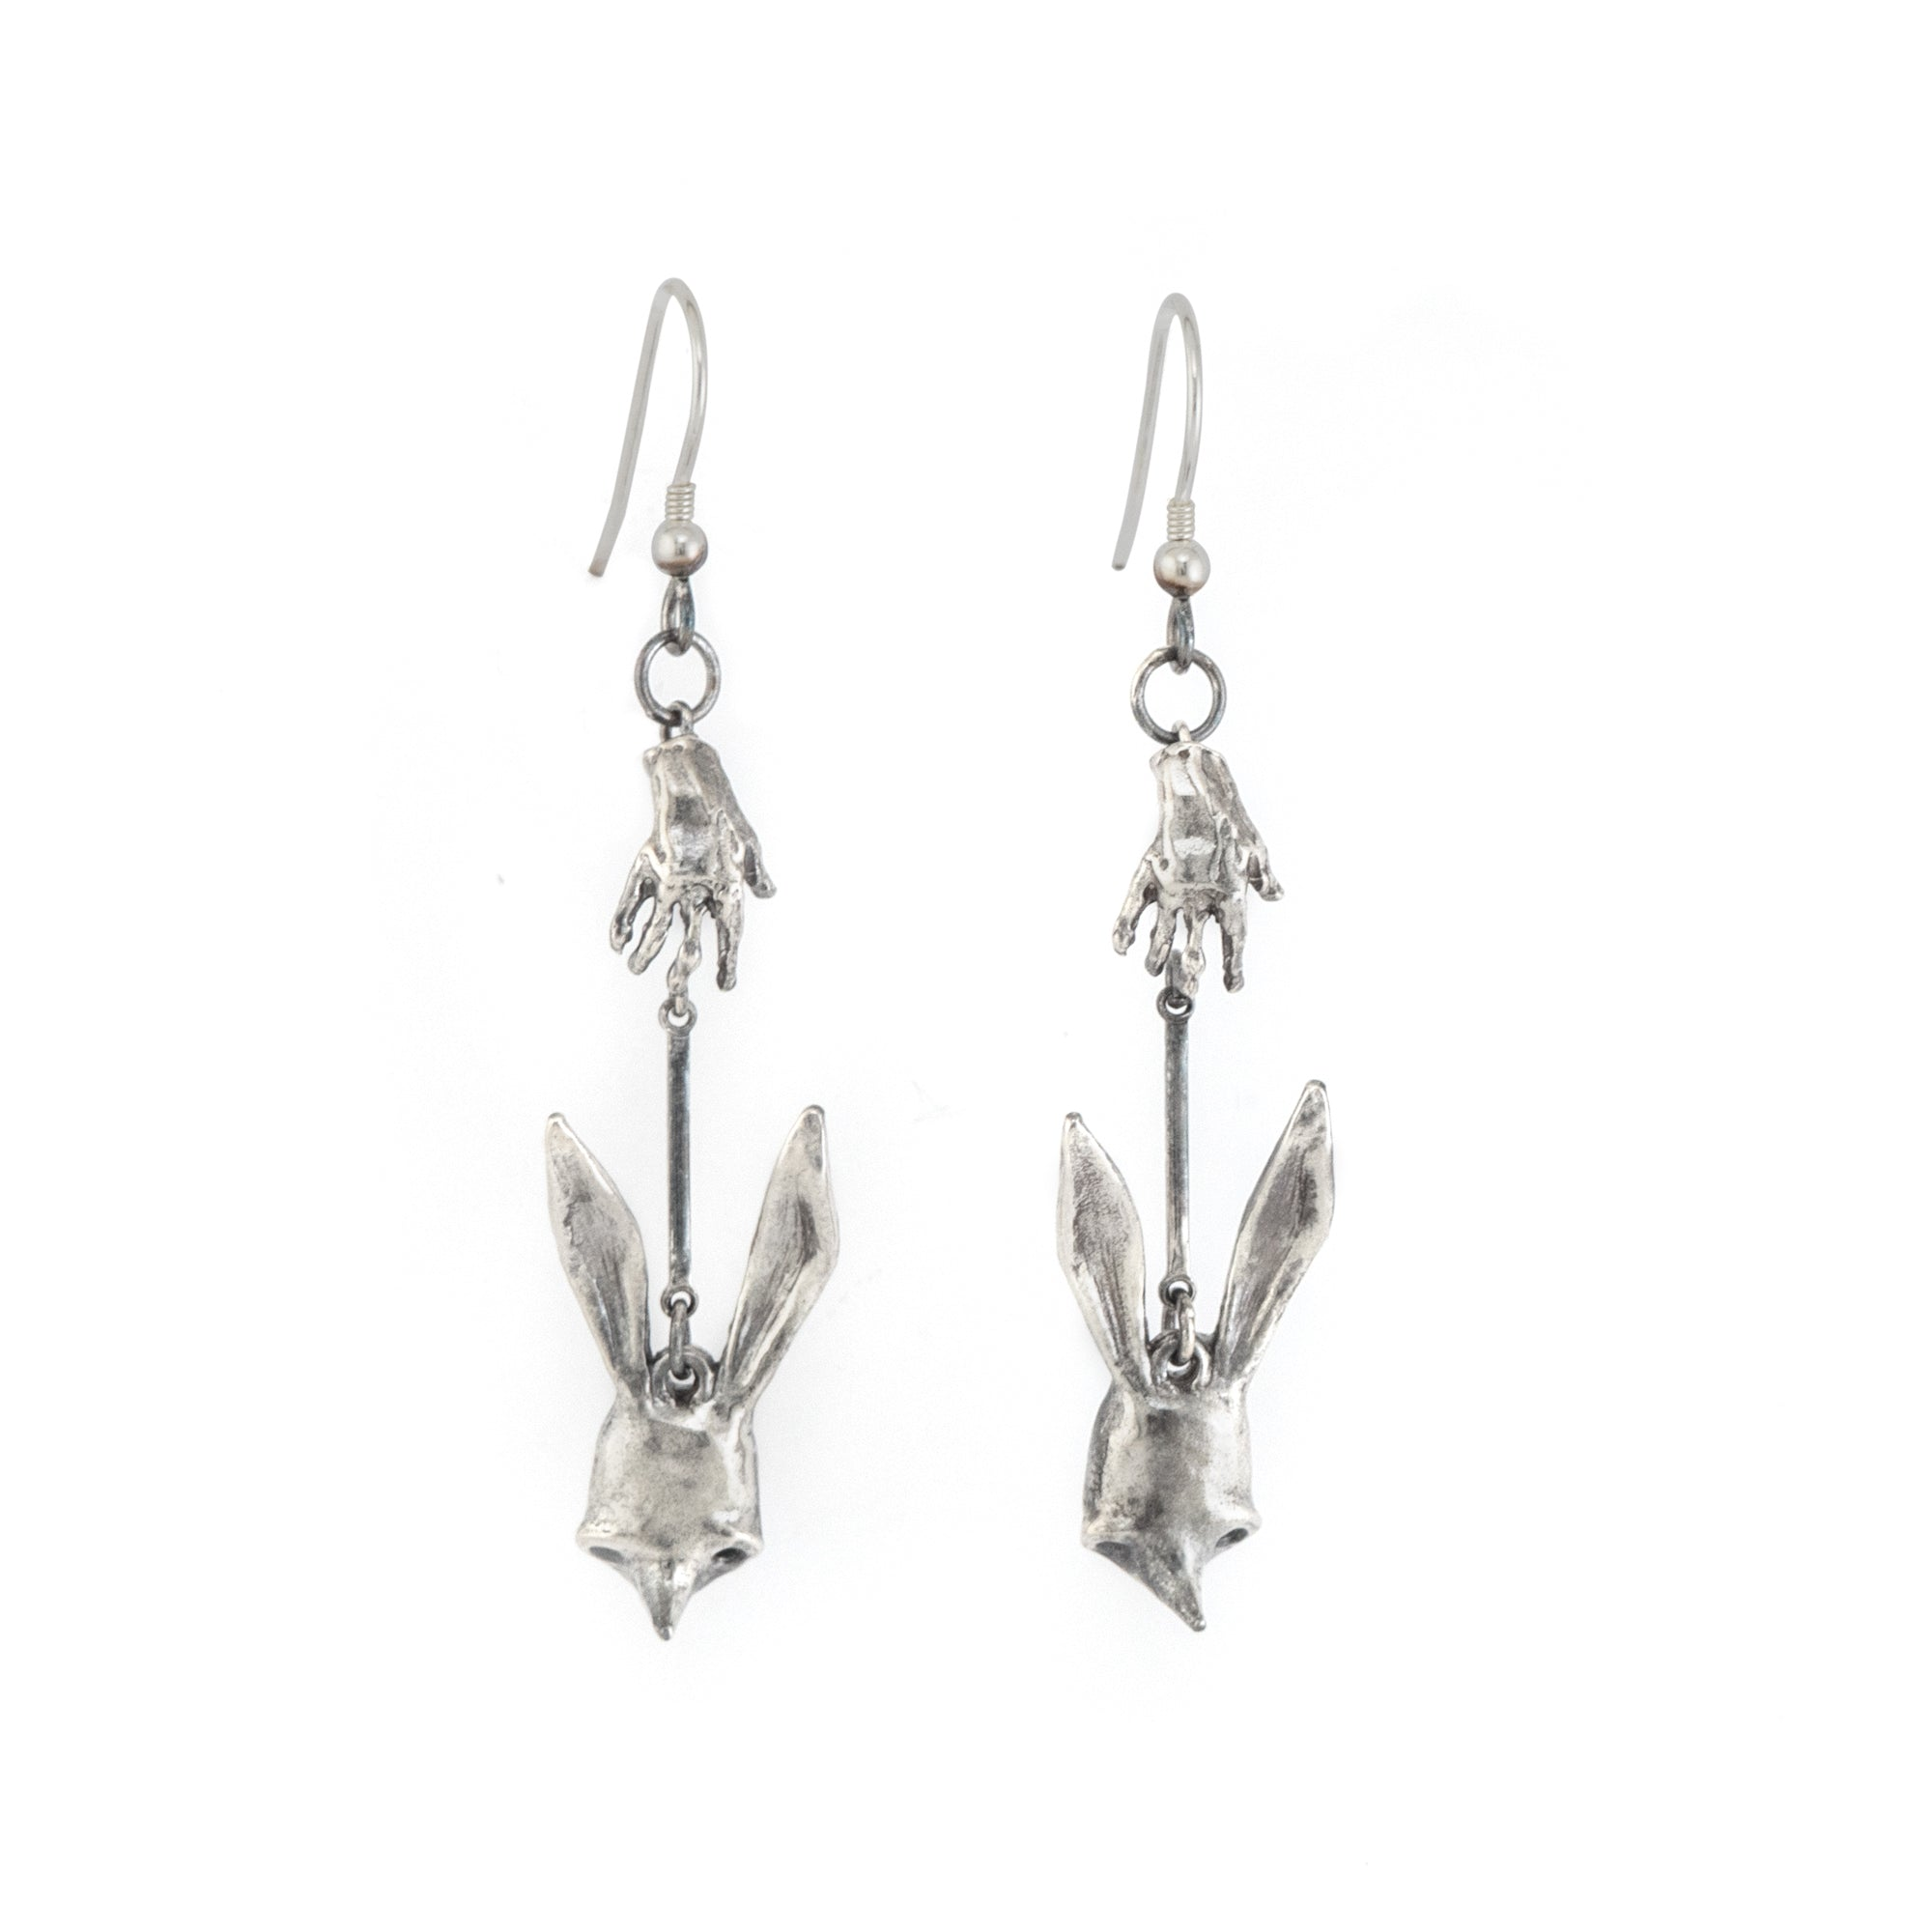 Hand + Sally Mask Hook Silver Earrings